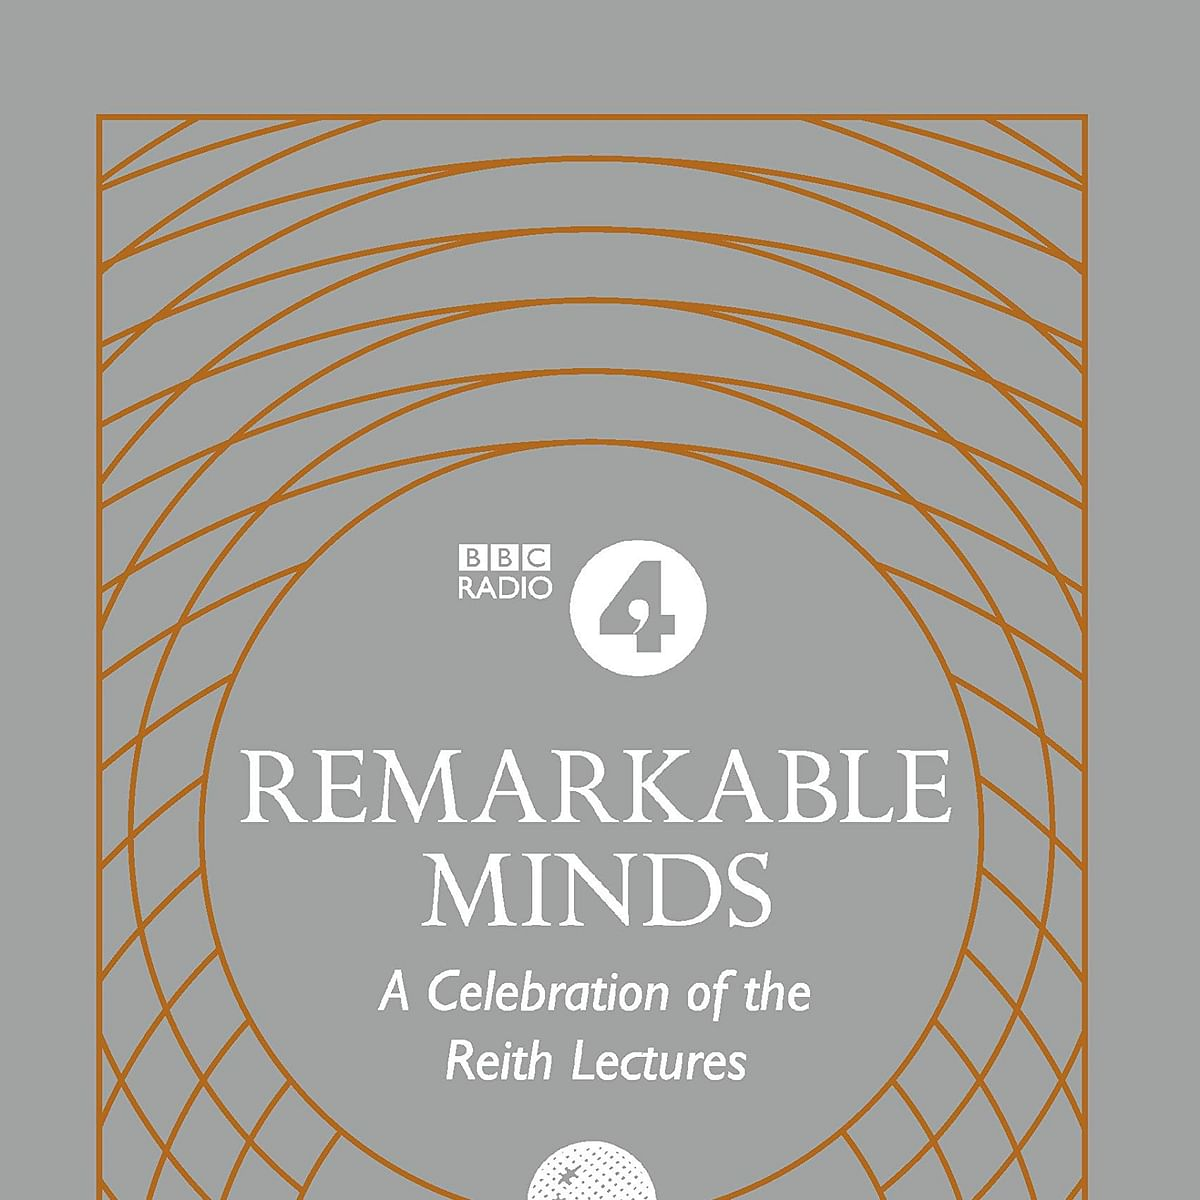 Book Review: Remarkable Minds, true to its name